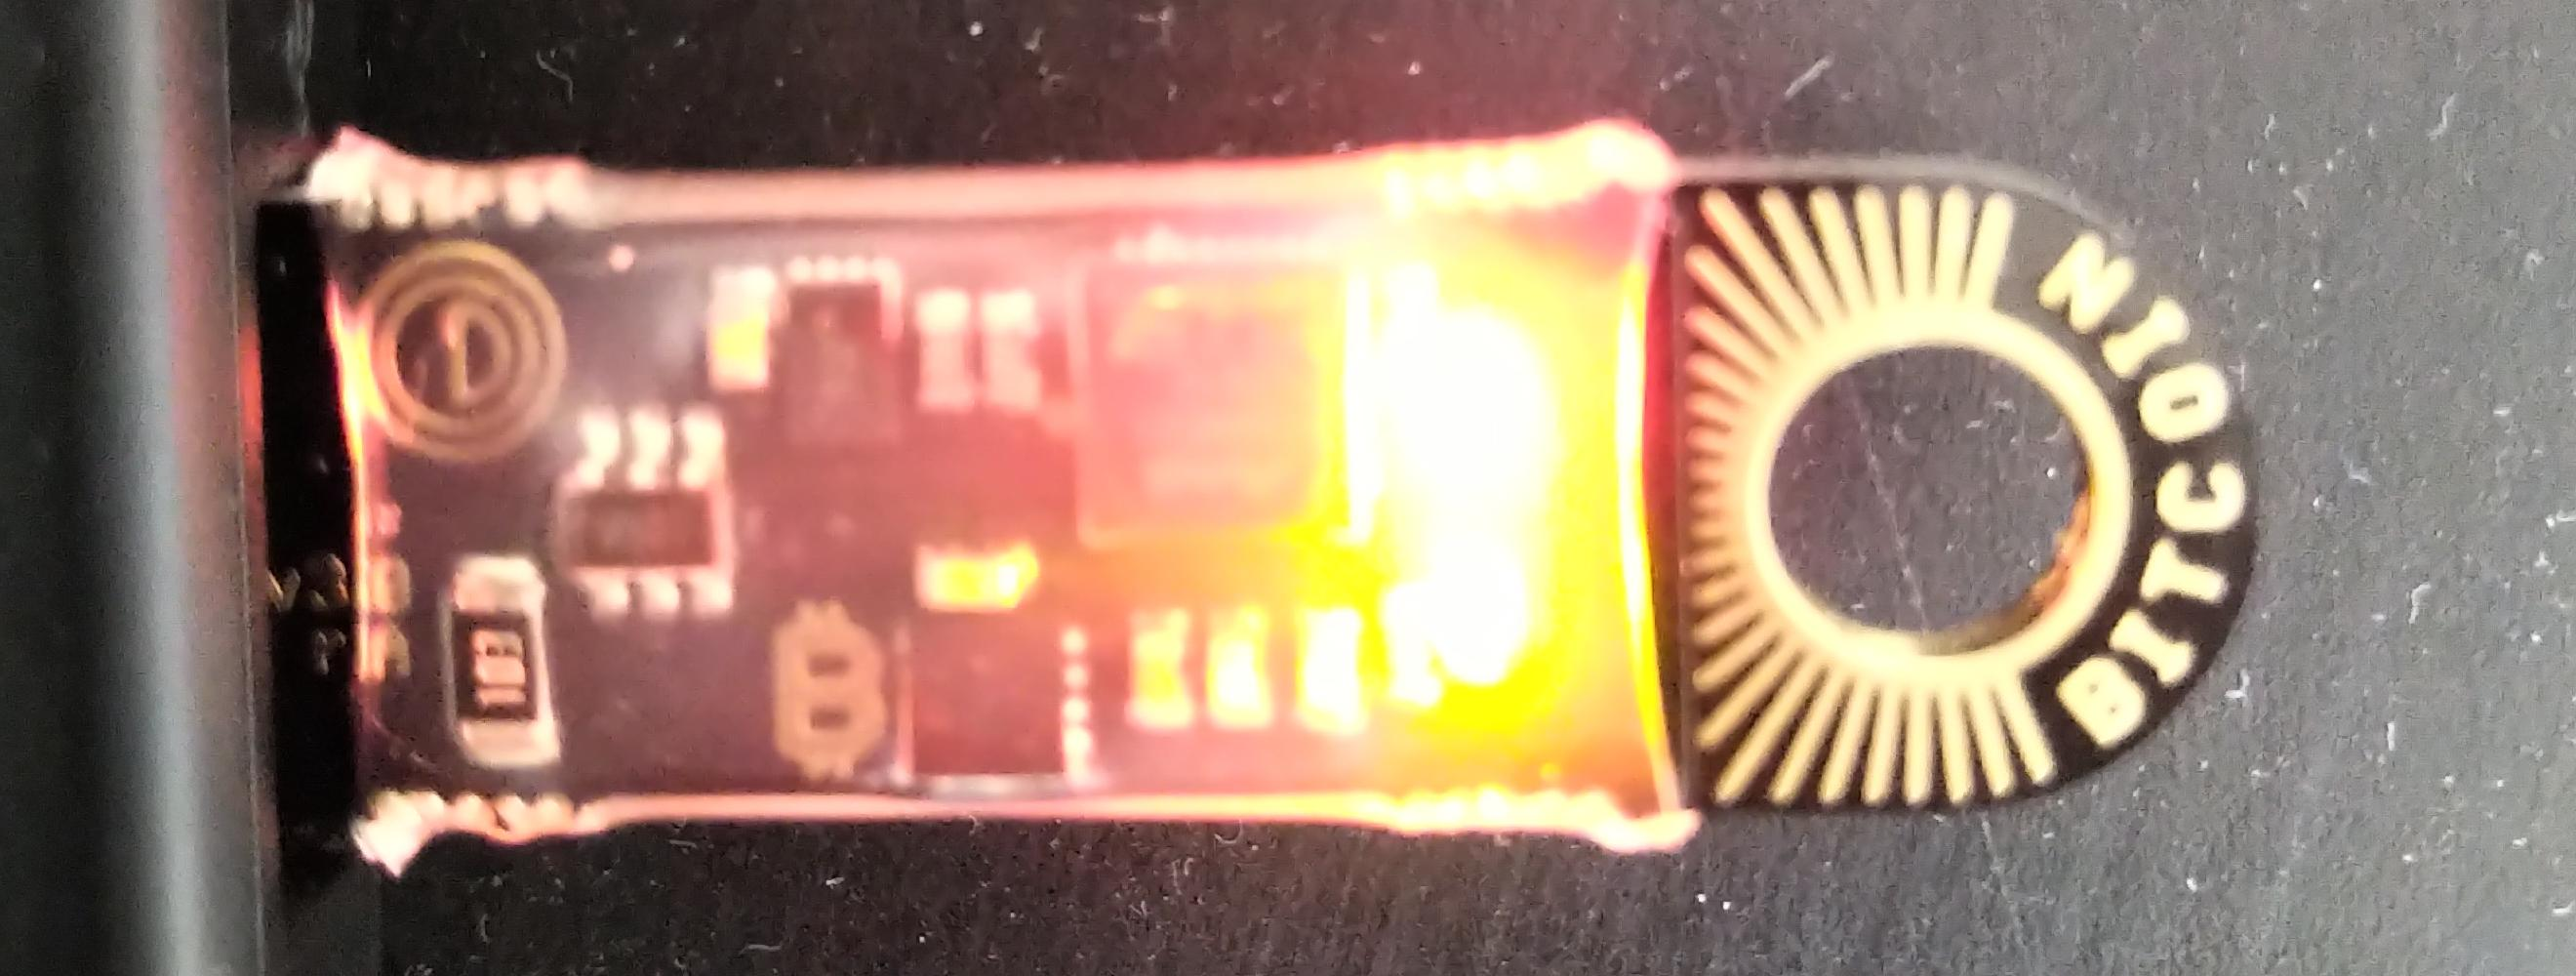 Opendime Bitcoin Wallet Set Up Step 0 flashing red light LED